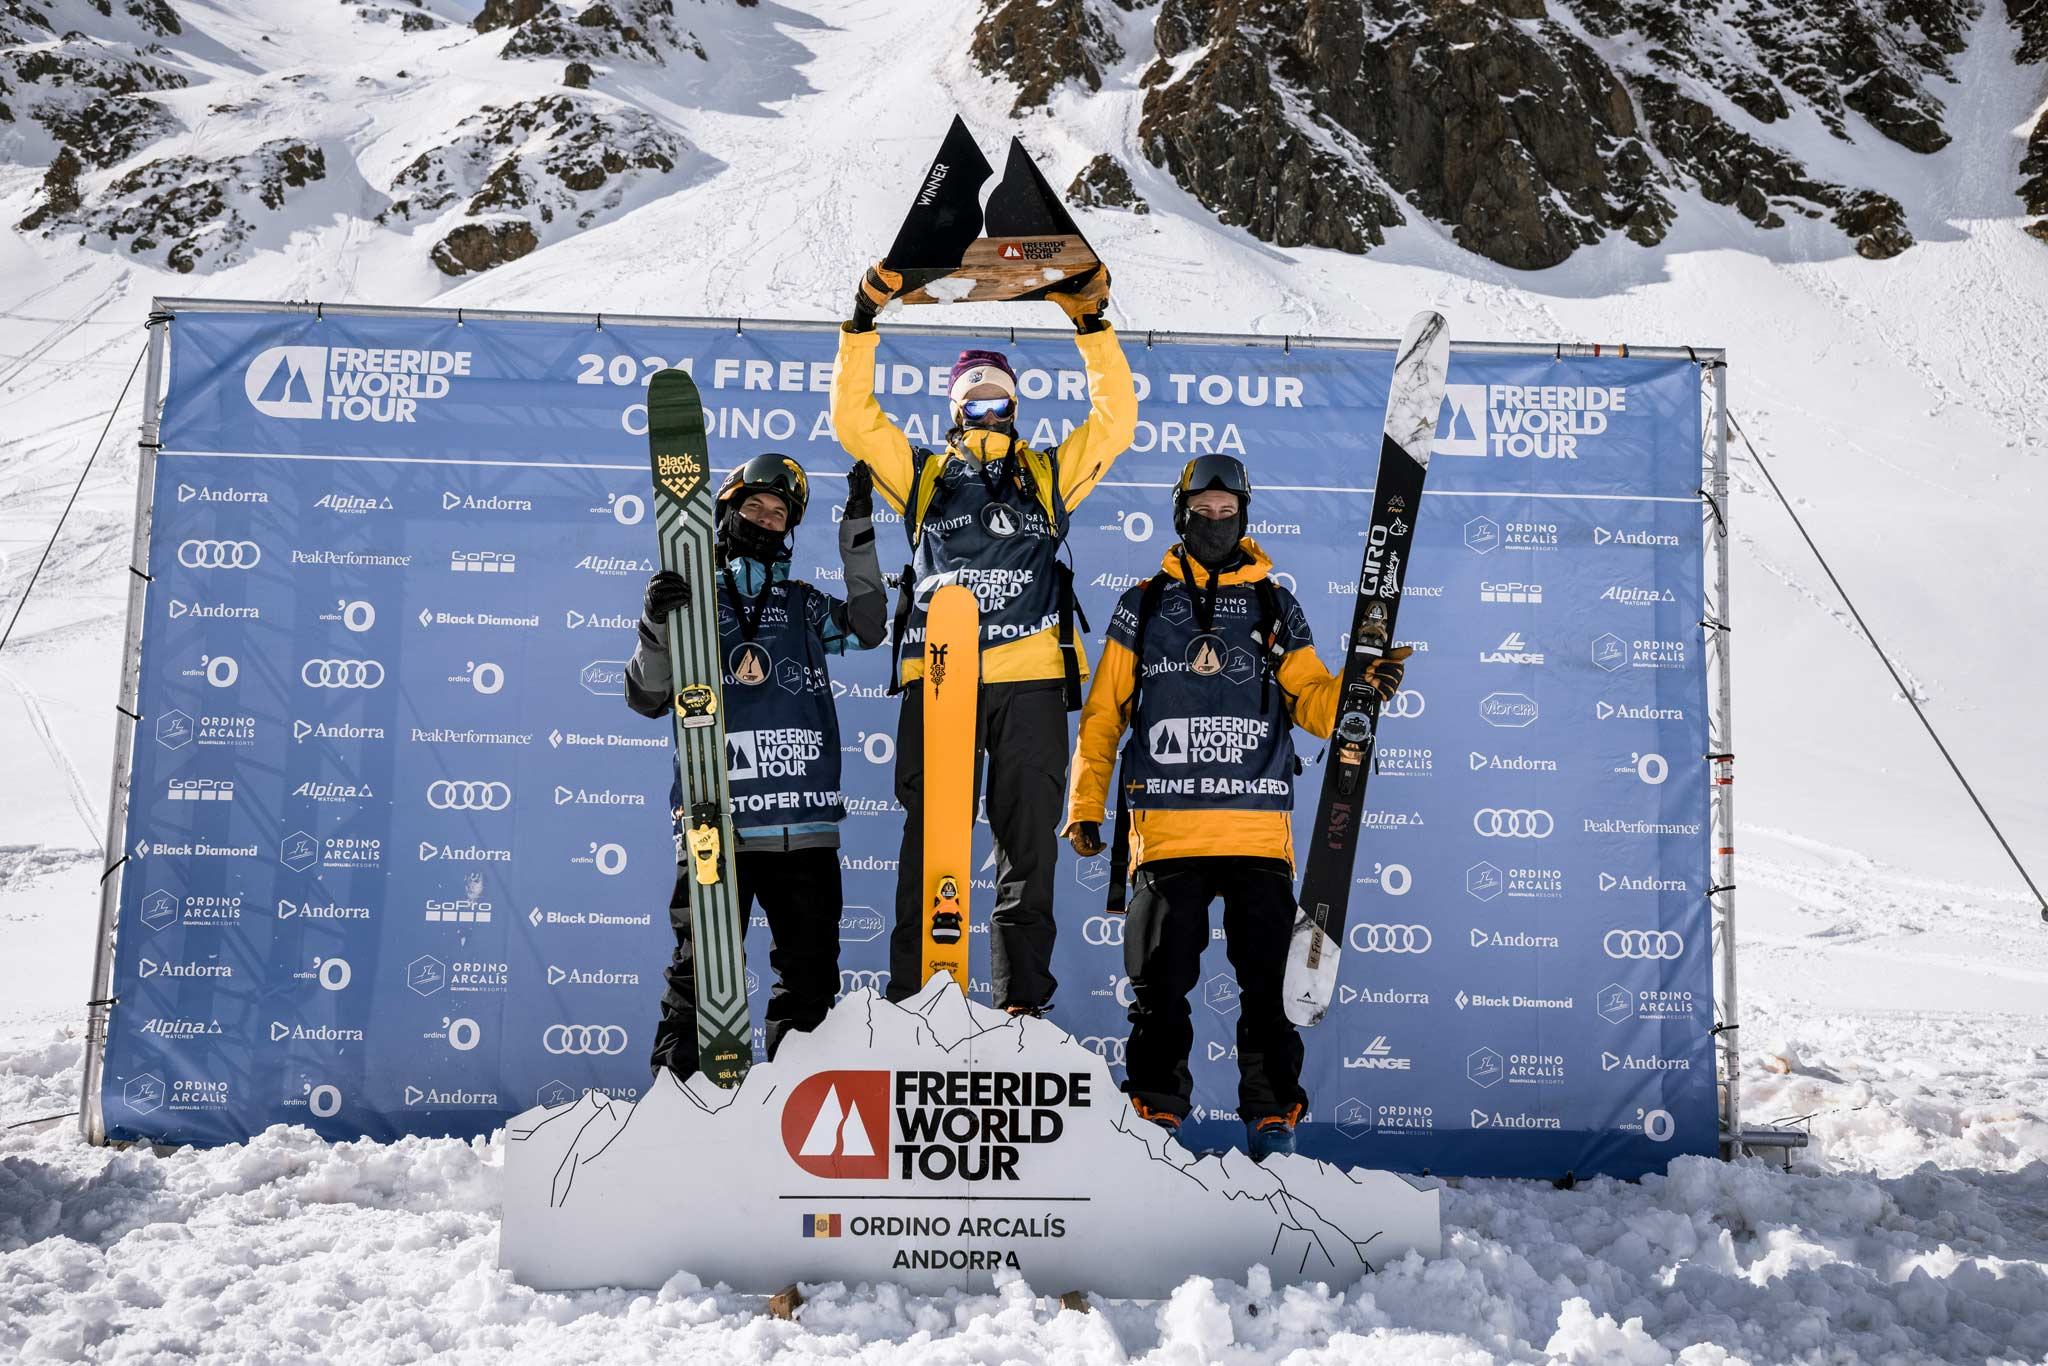 Freeride World Tour 2021 #2 in Andorra: Die Ergebnisse & Winning Runs